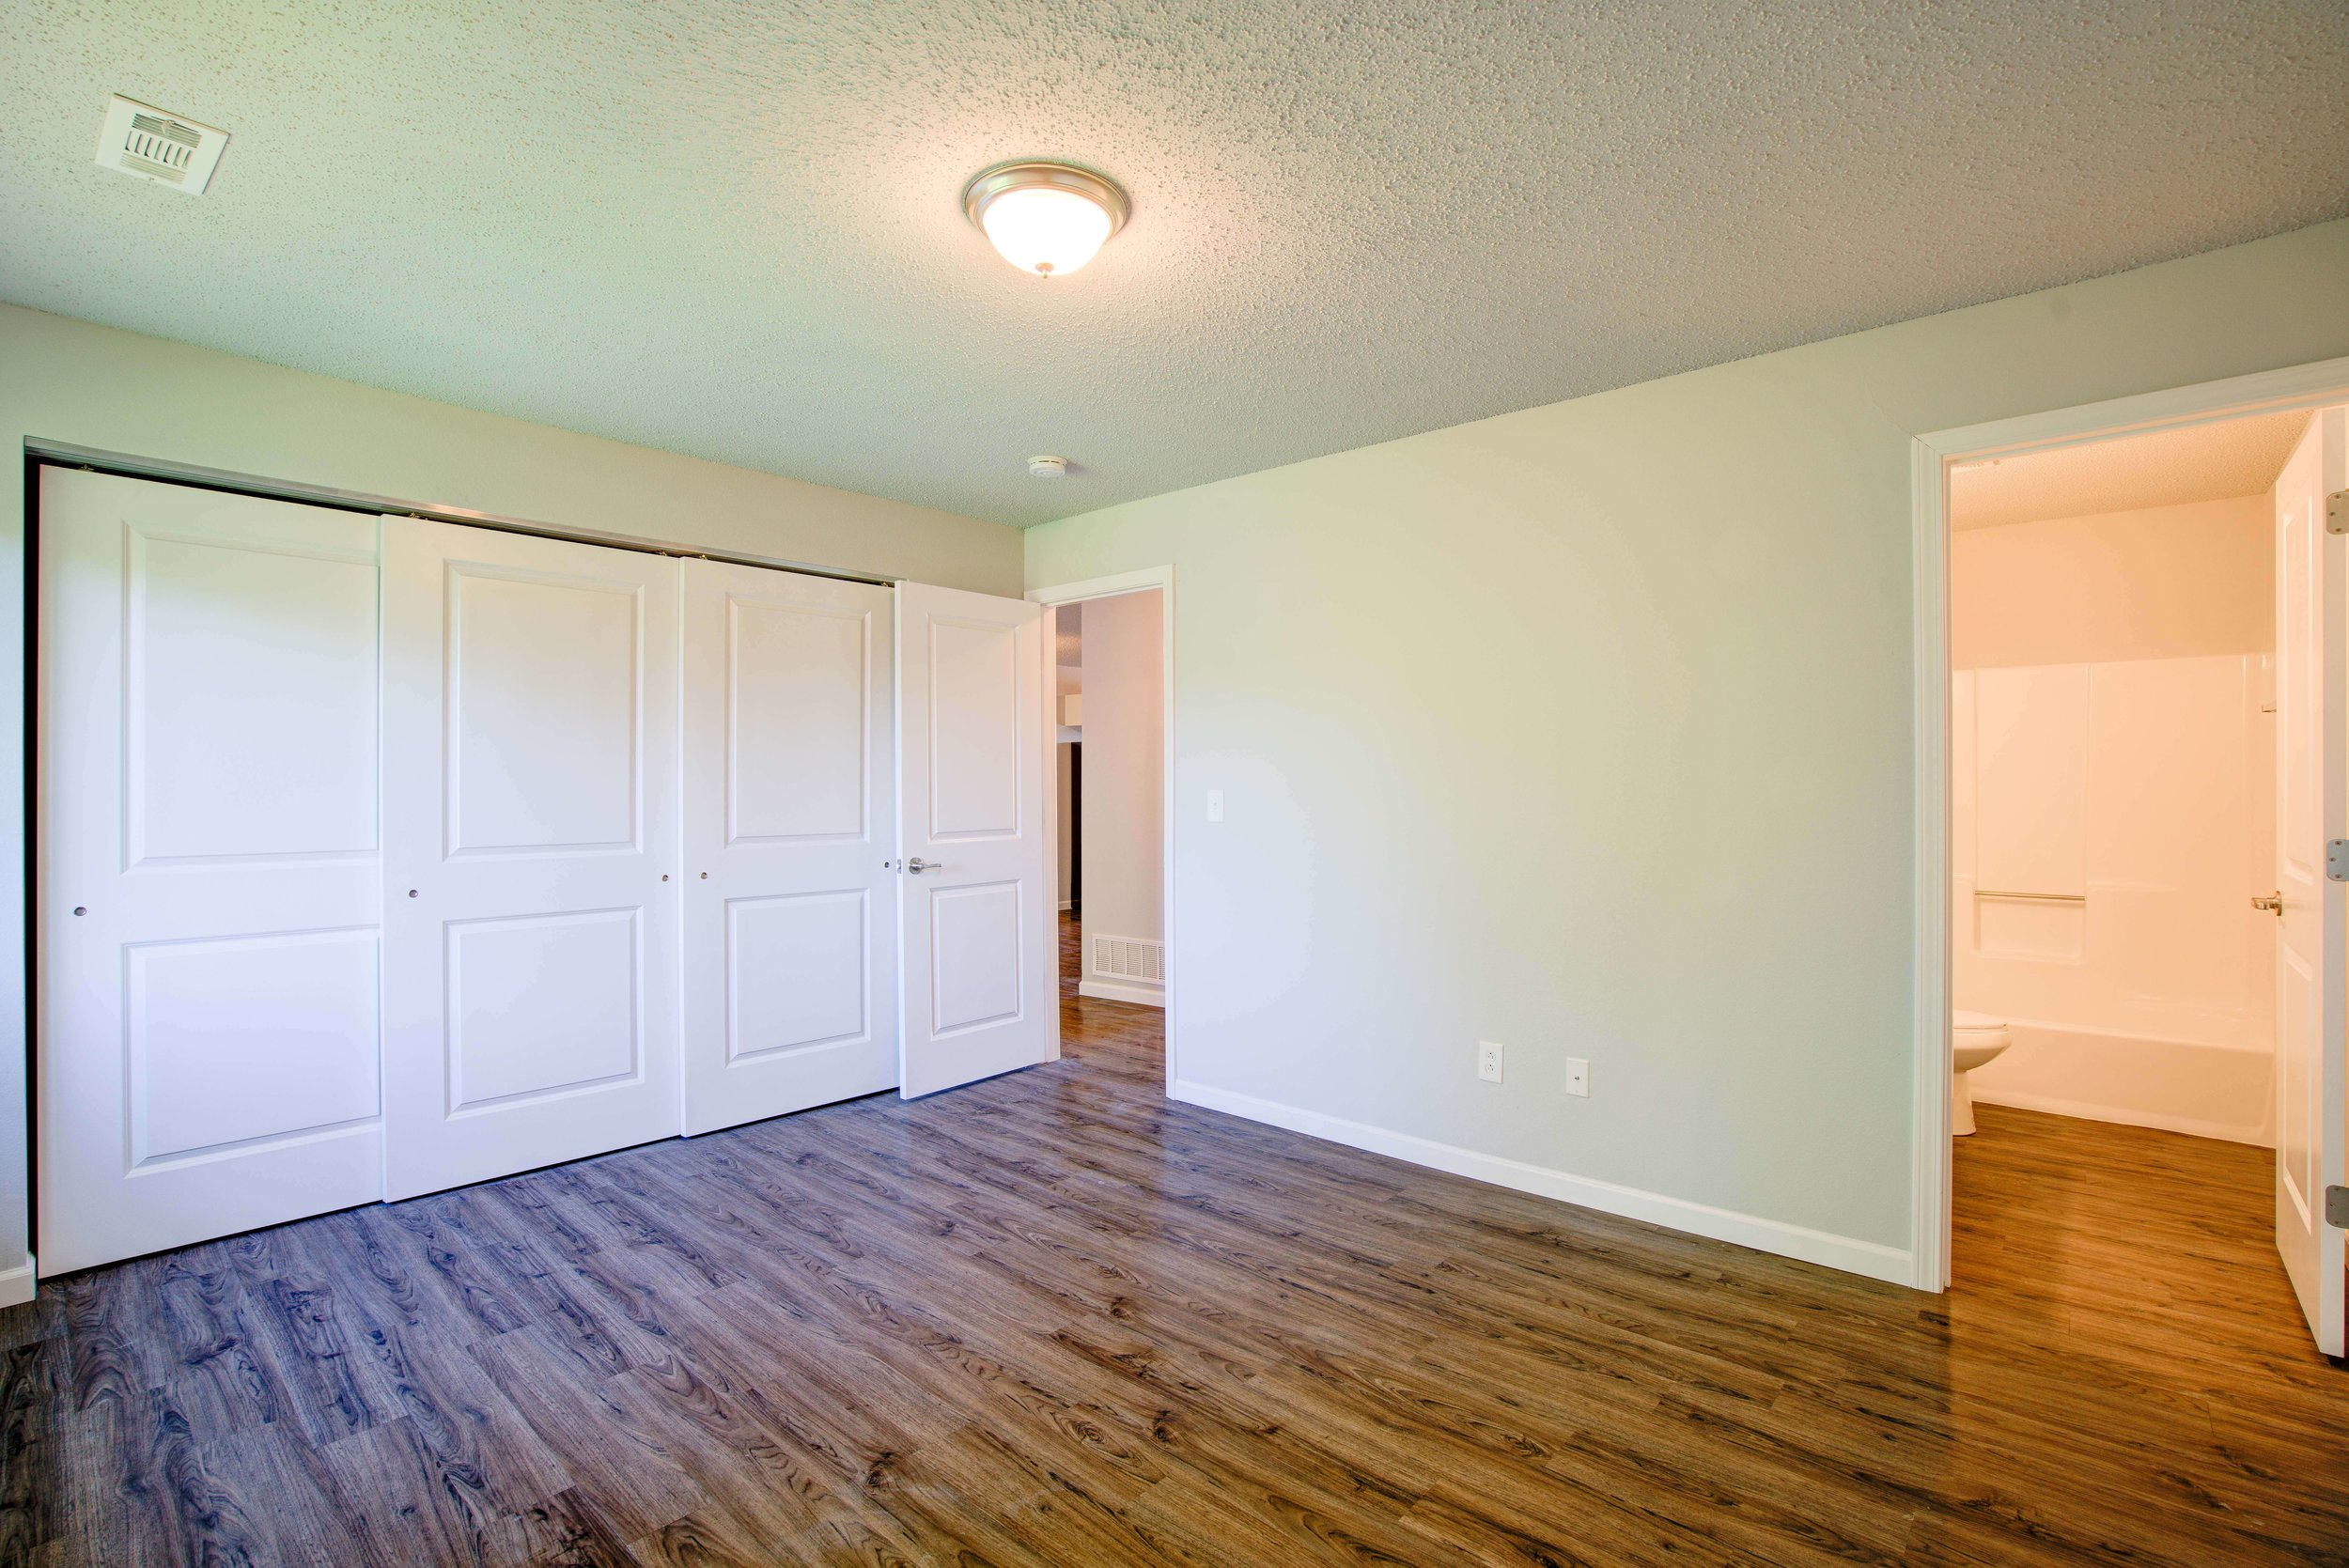 For Rent In O'Fallon